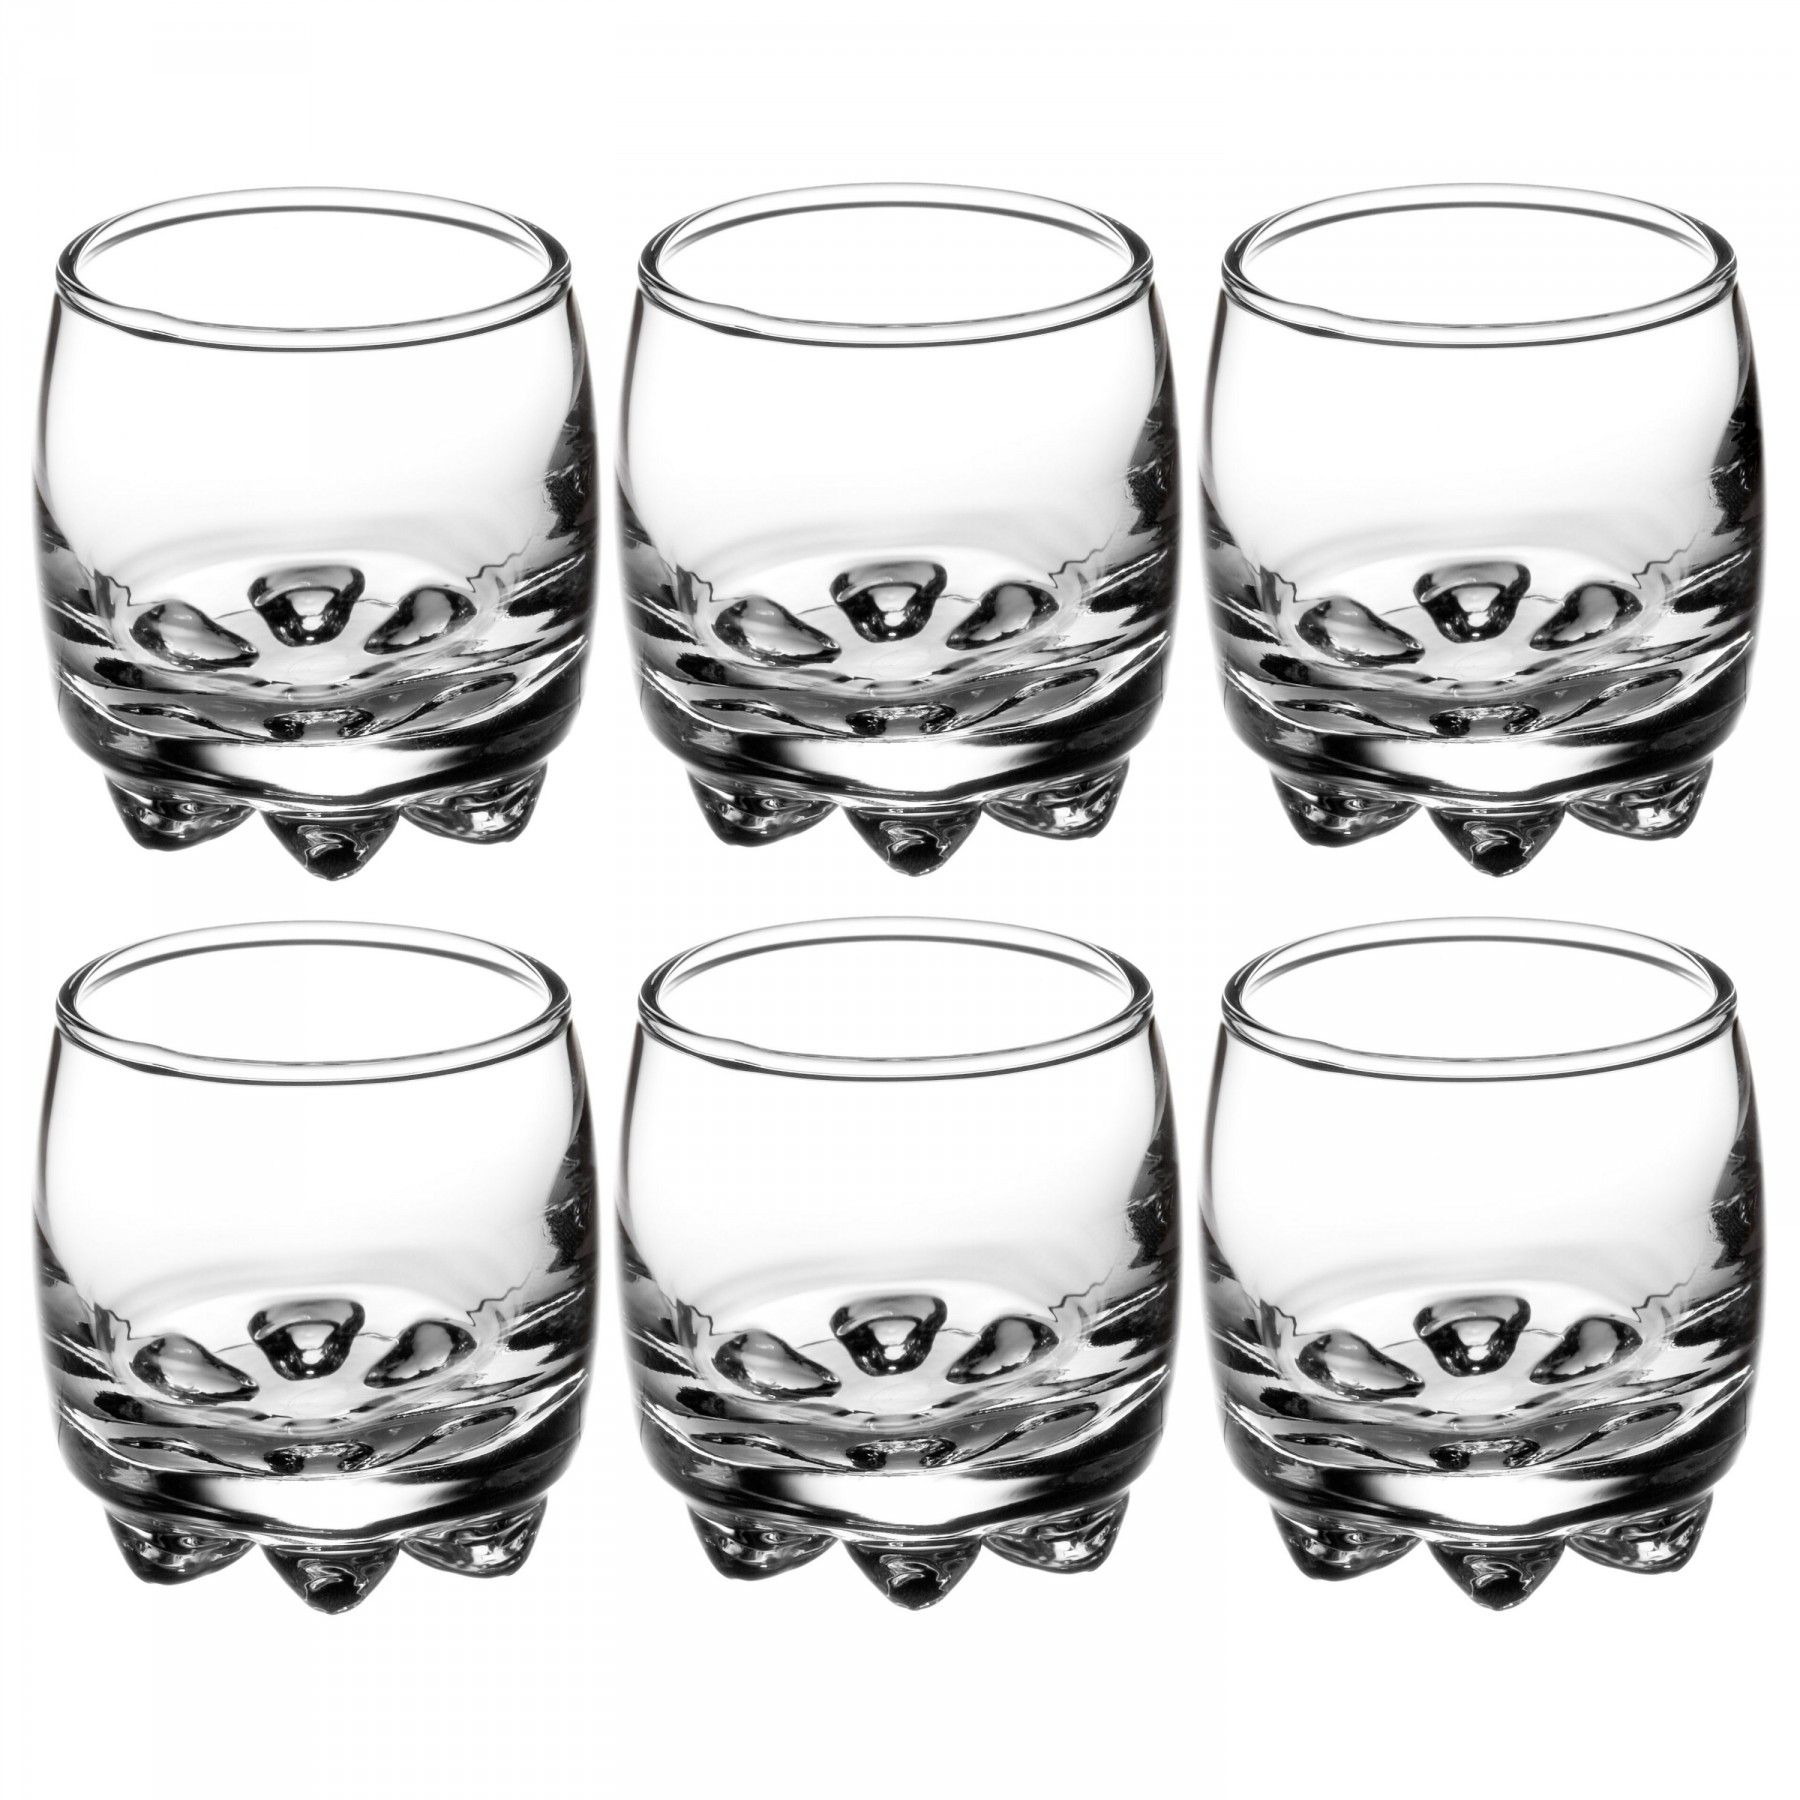 Enjoy a cold shot of whiskey with these Bormioli Rocco